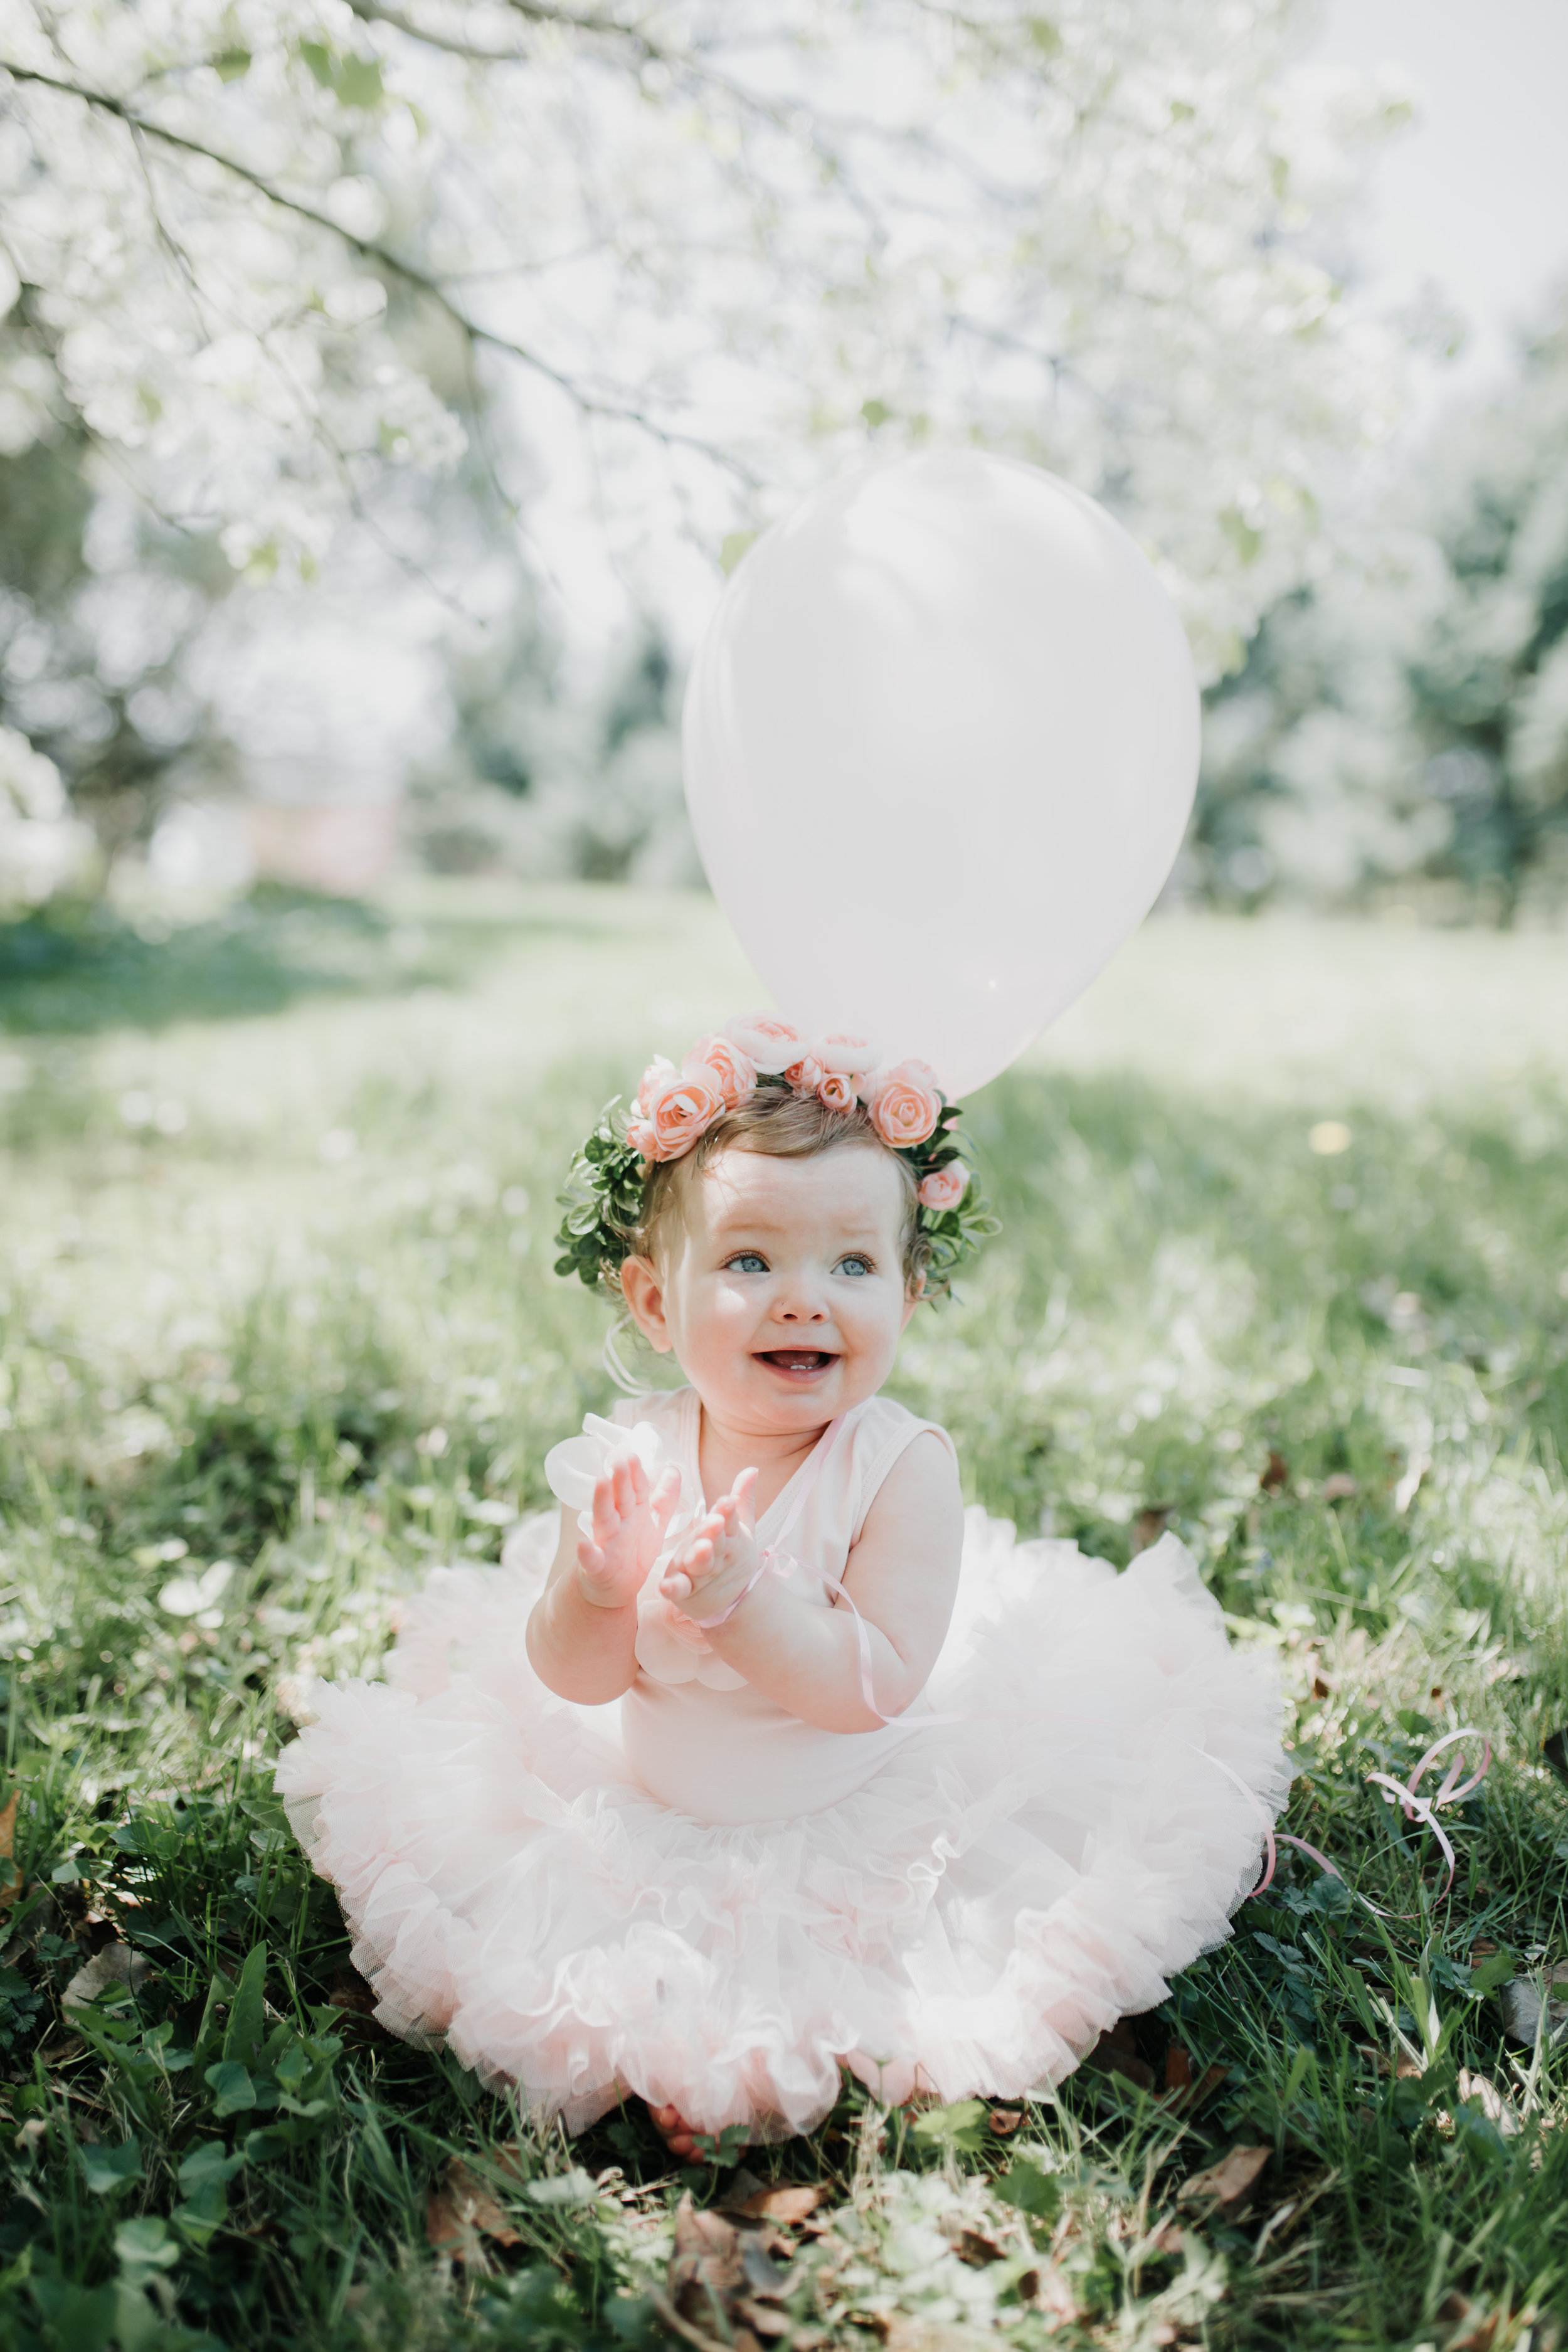 Johanna 1-Year Photos - Nathaniel Jensen Photography-10.jpg